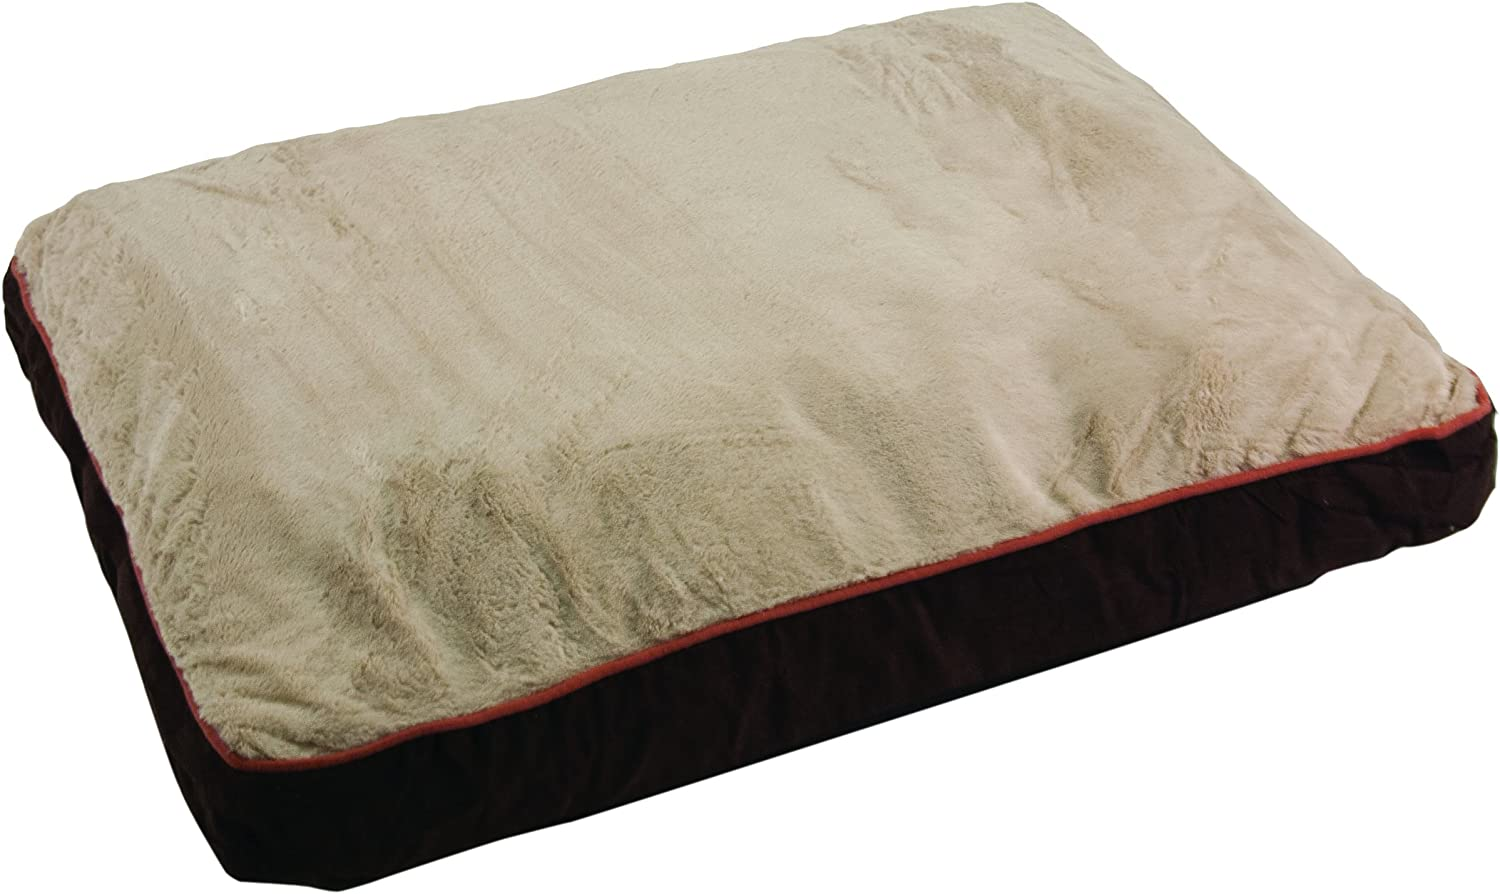 Dallas Manufacturing Co. 27Inch by 36Inch Gusseted Pet Bed